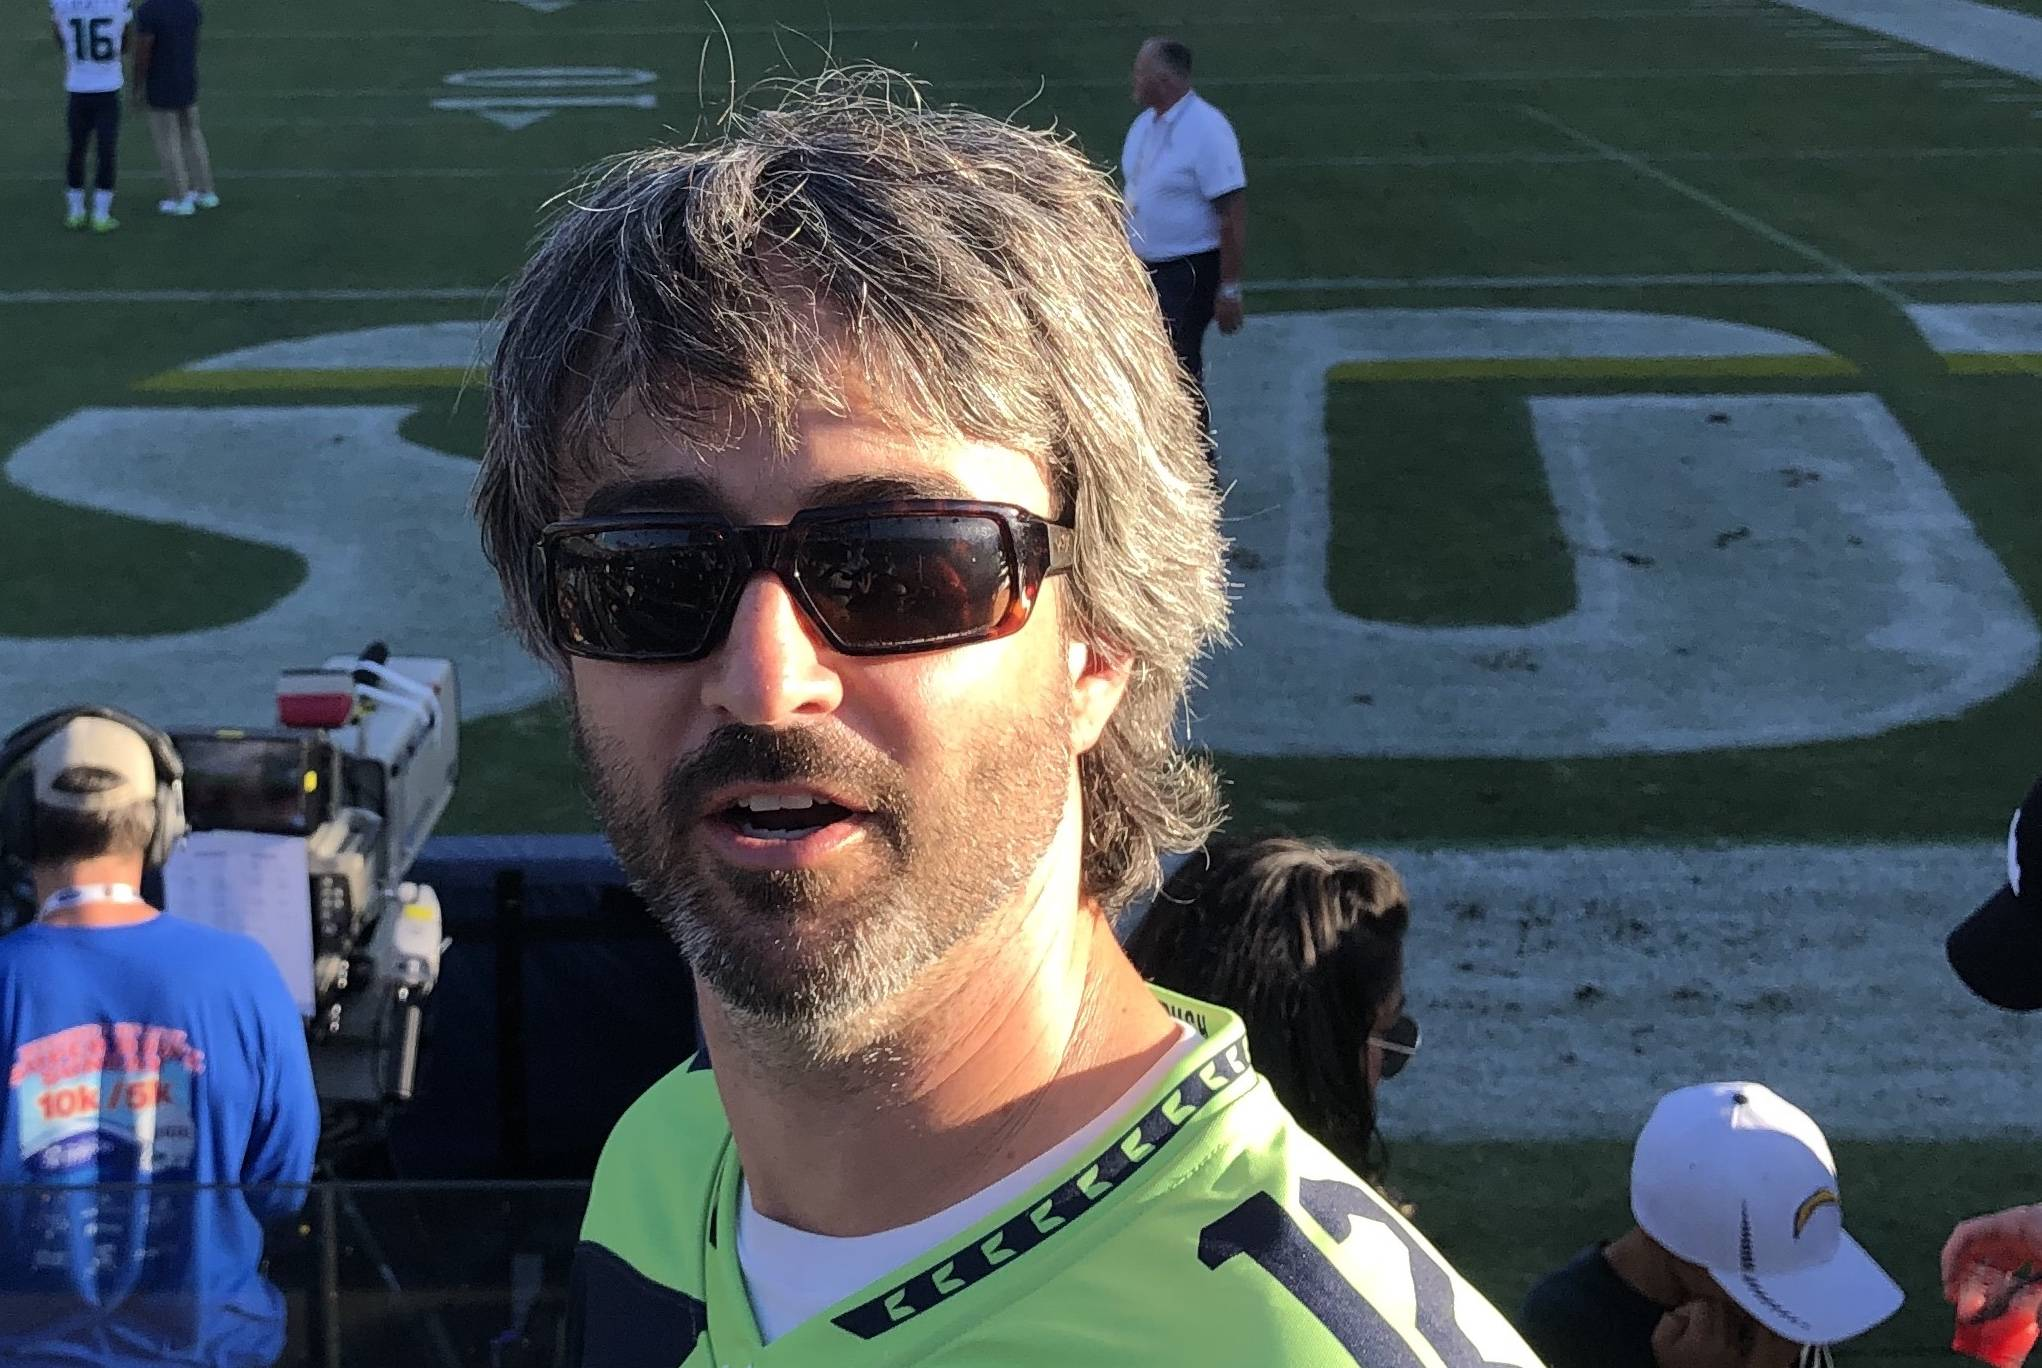 Keith is half turning toward the camera with sunglasses on at a Seahawks game. The sun is lighting half of his face.